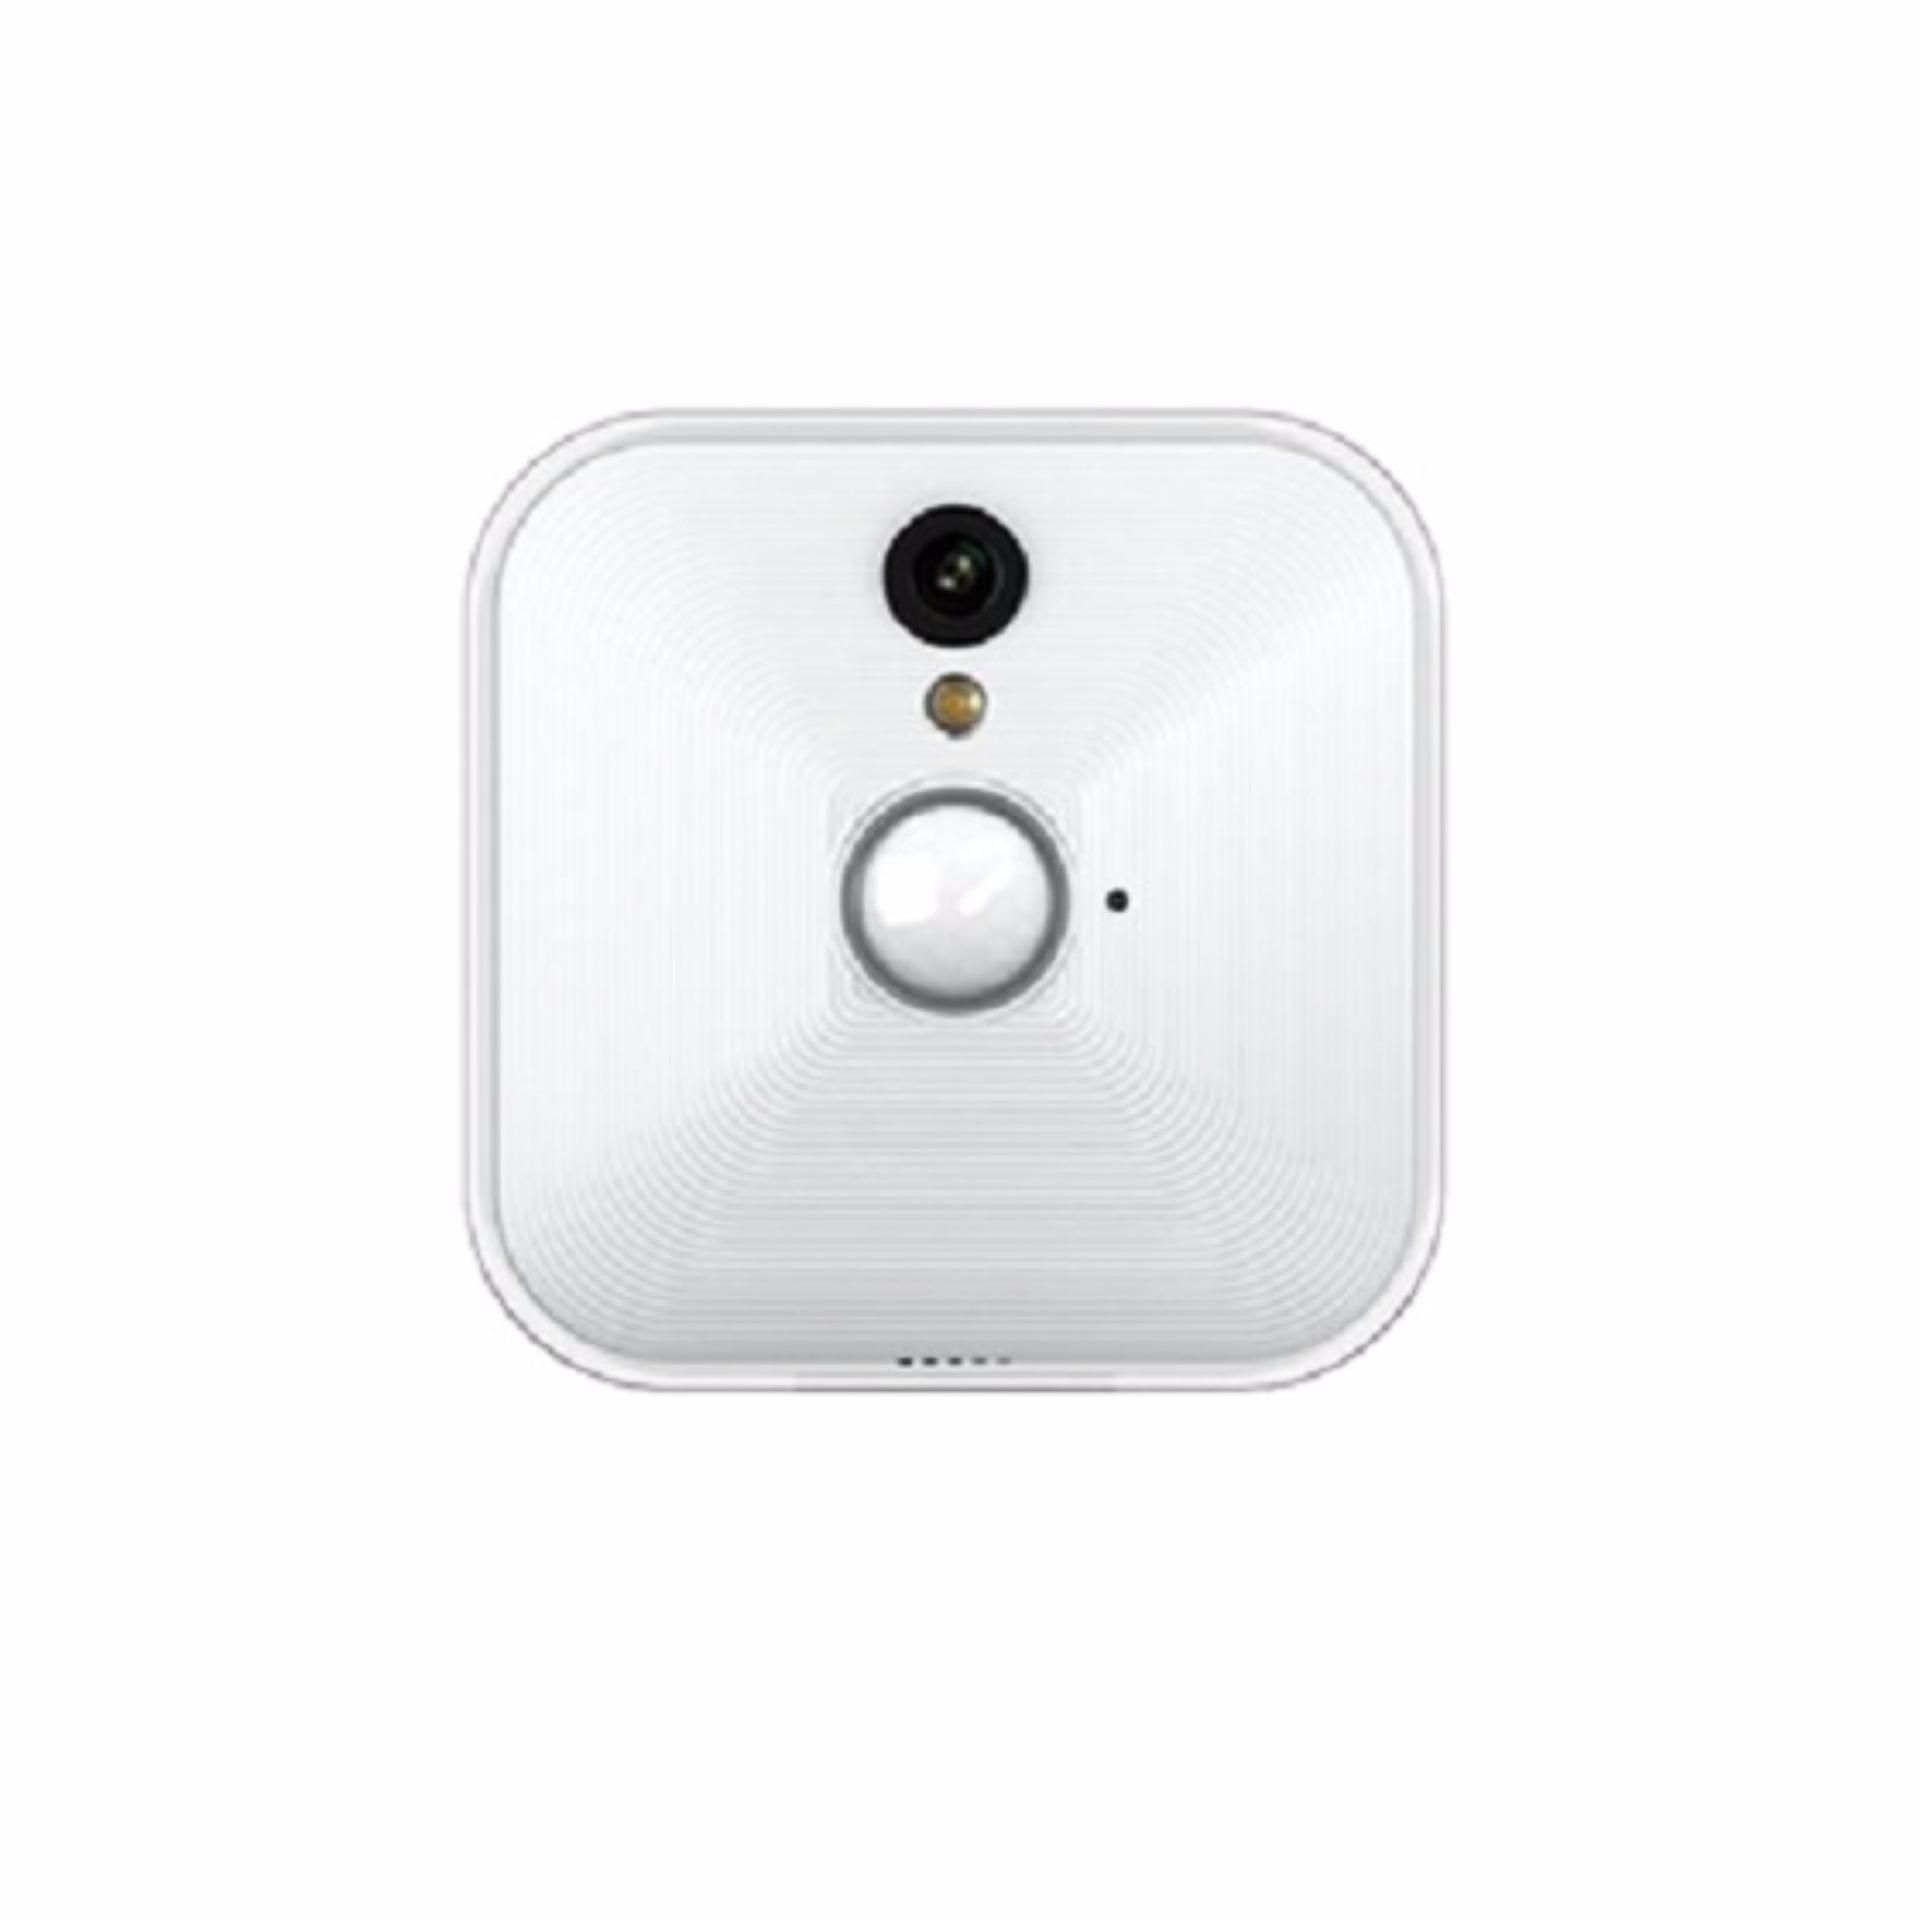 Aztech BCM00100U Blink Home Security & HD Video Monitoring One System Camera (Can't work alone)